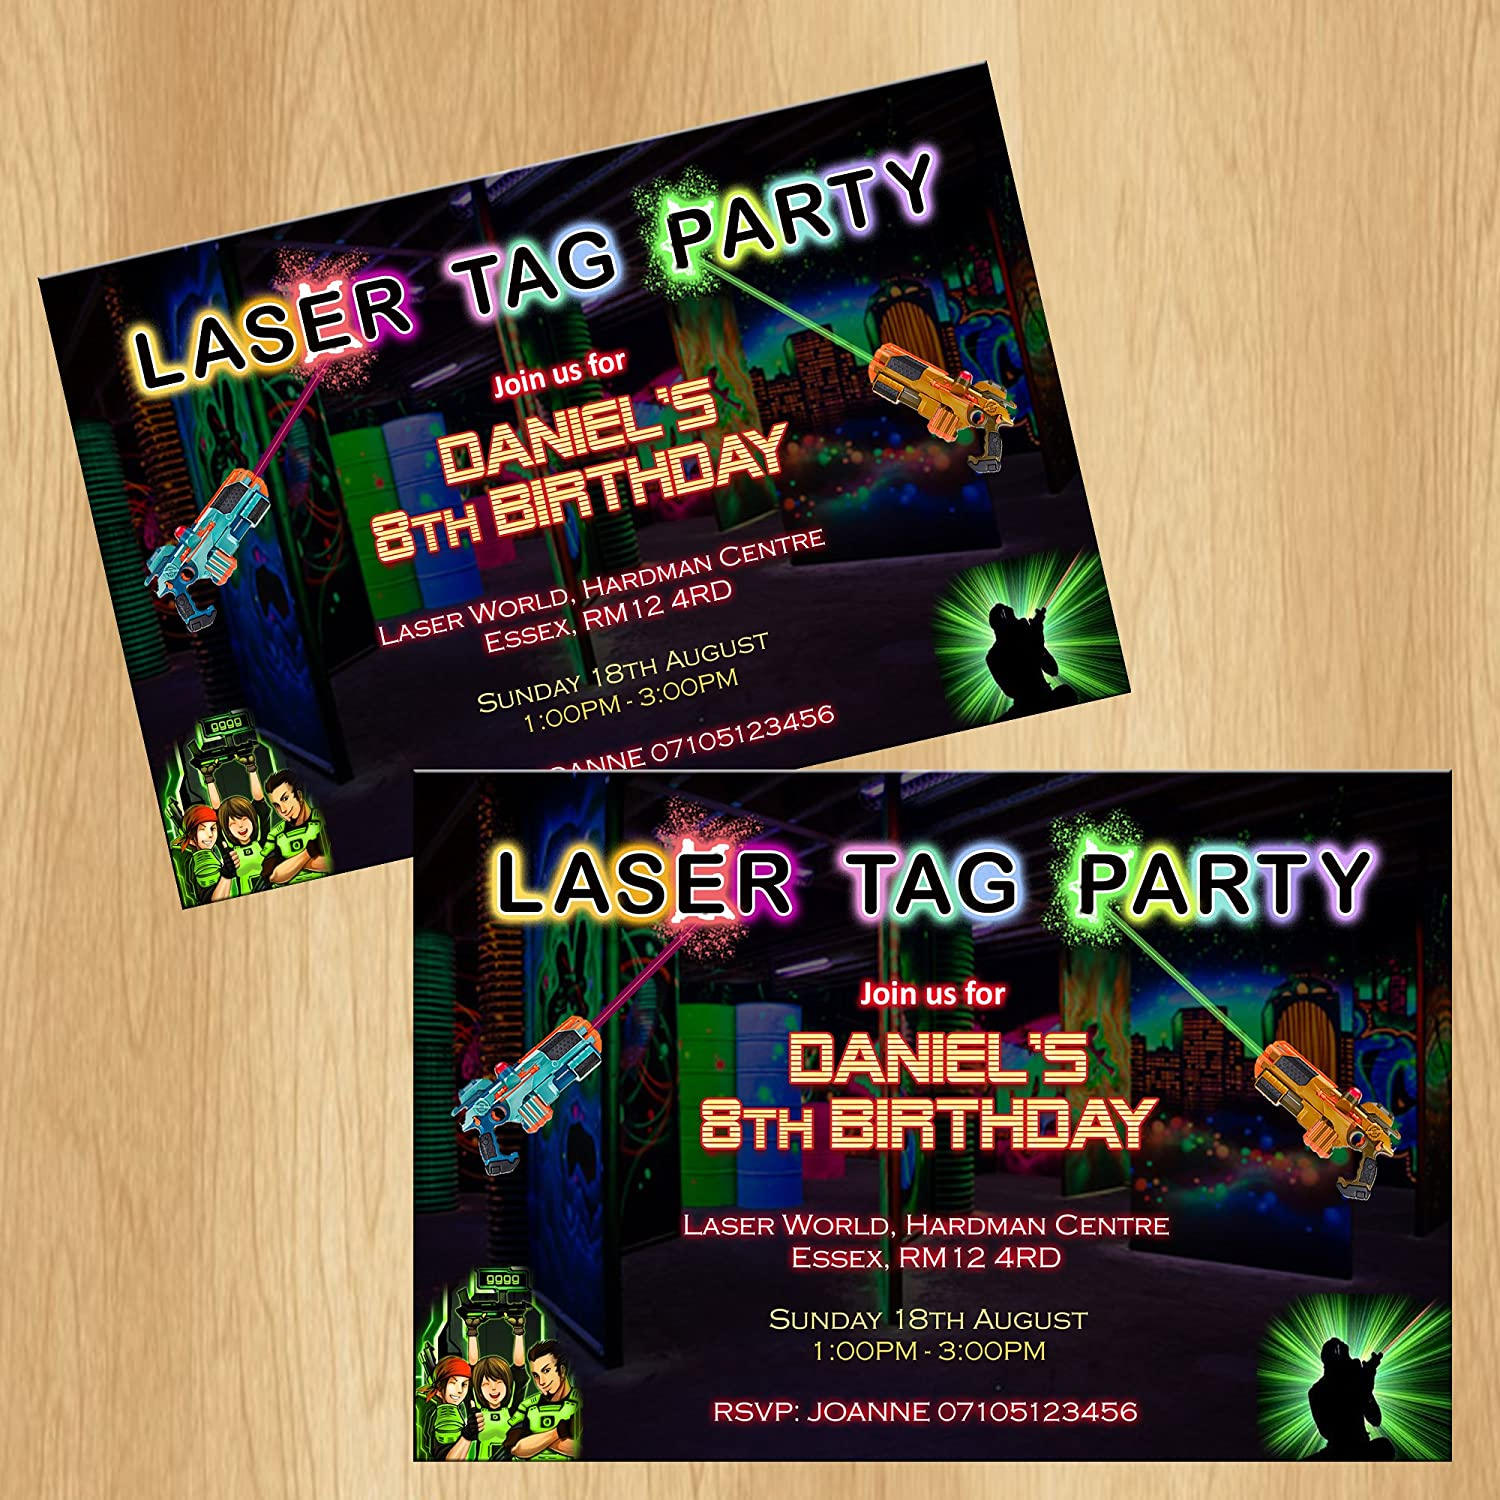 Laser Tag Party Invitations Personalised Birthday Invites: Amazon.co ...